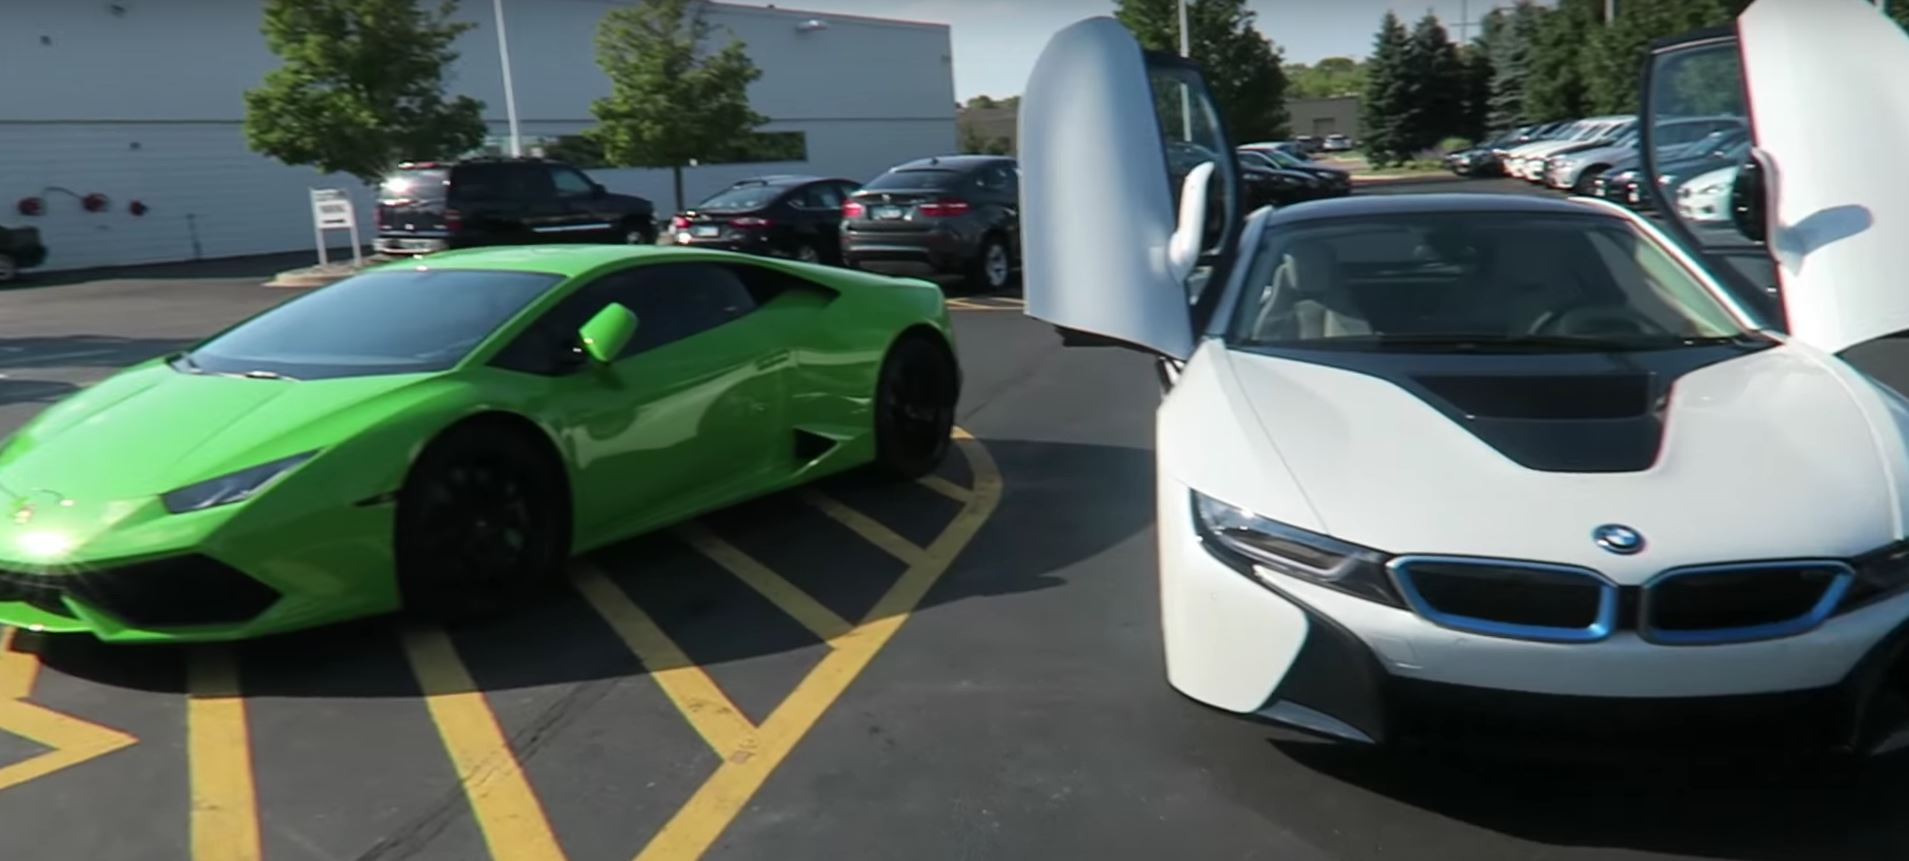 Vehicle Virgins Buys Bmw I8 Plans To Do Series On Everyday